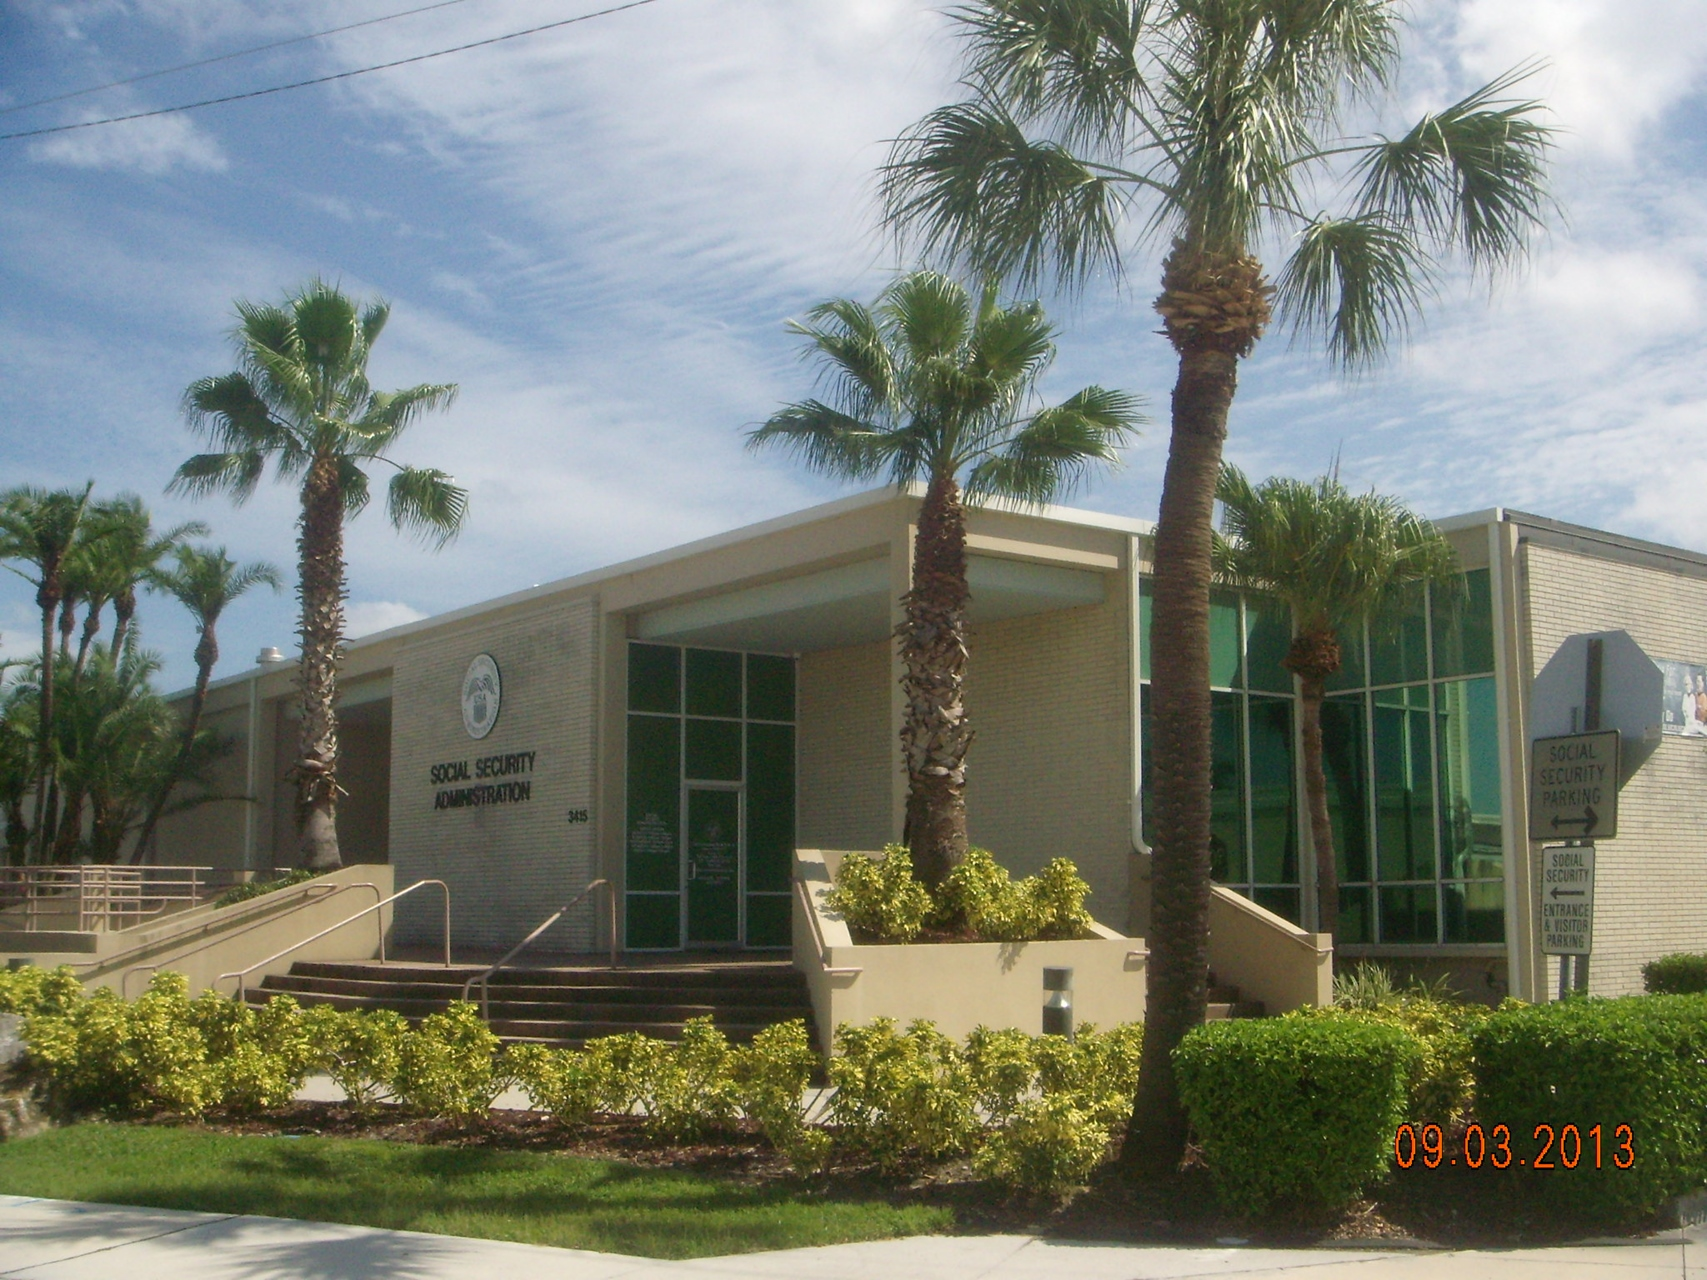 Tampa Social Security Administration Office E Frontage